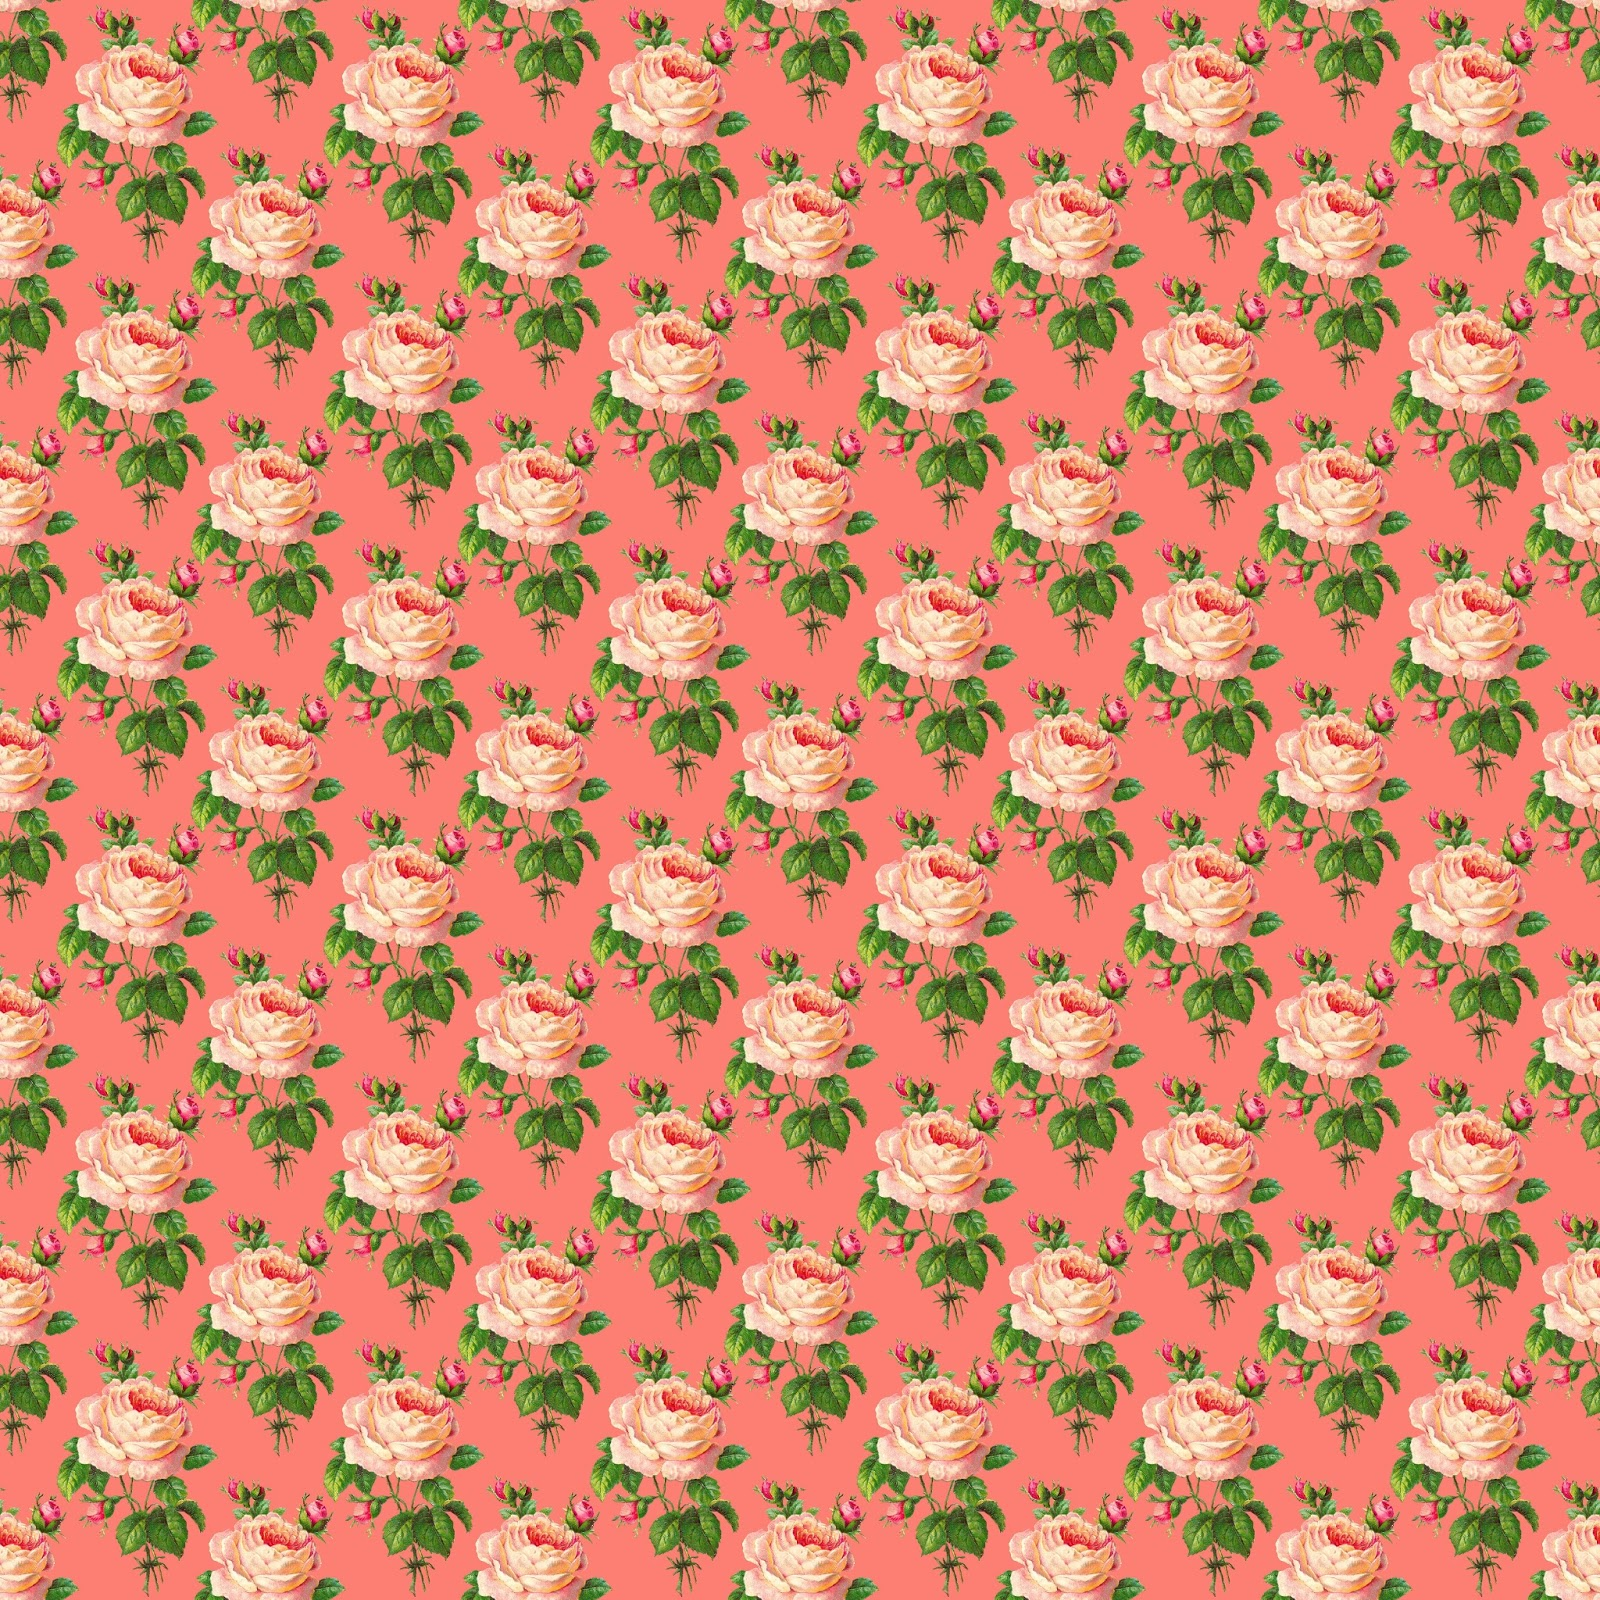 The Graphics Monarch Digital Background Scrapbooking Paper Pink